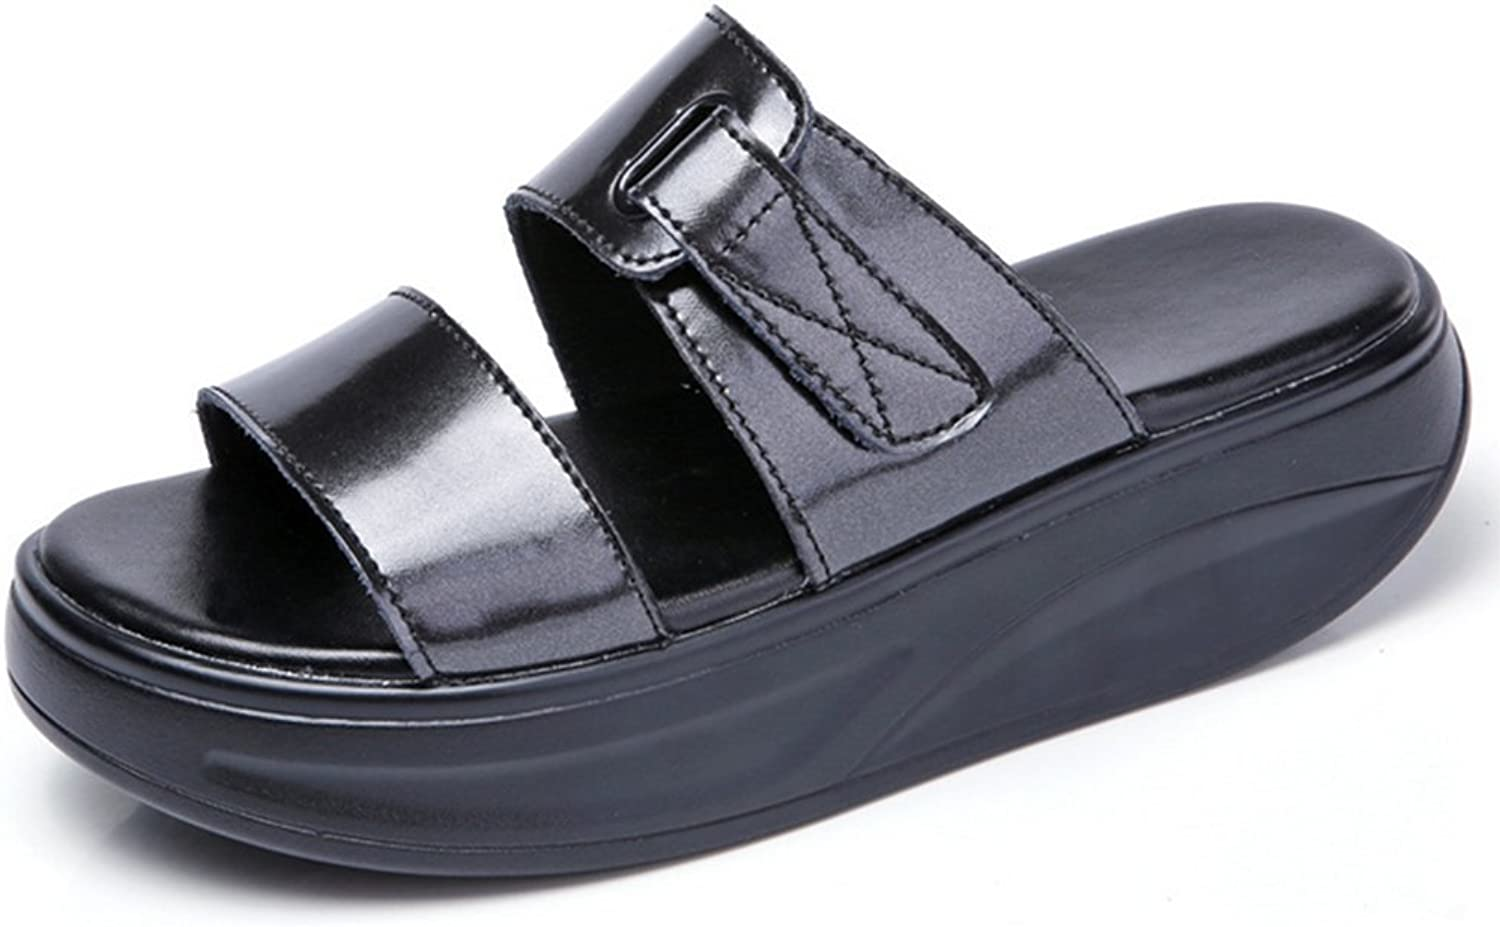 Weiwei Lady Summer Thick-Soled Slippers,Fashion with Flat Sandals Non-Slip Wear Slippers